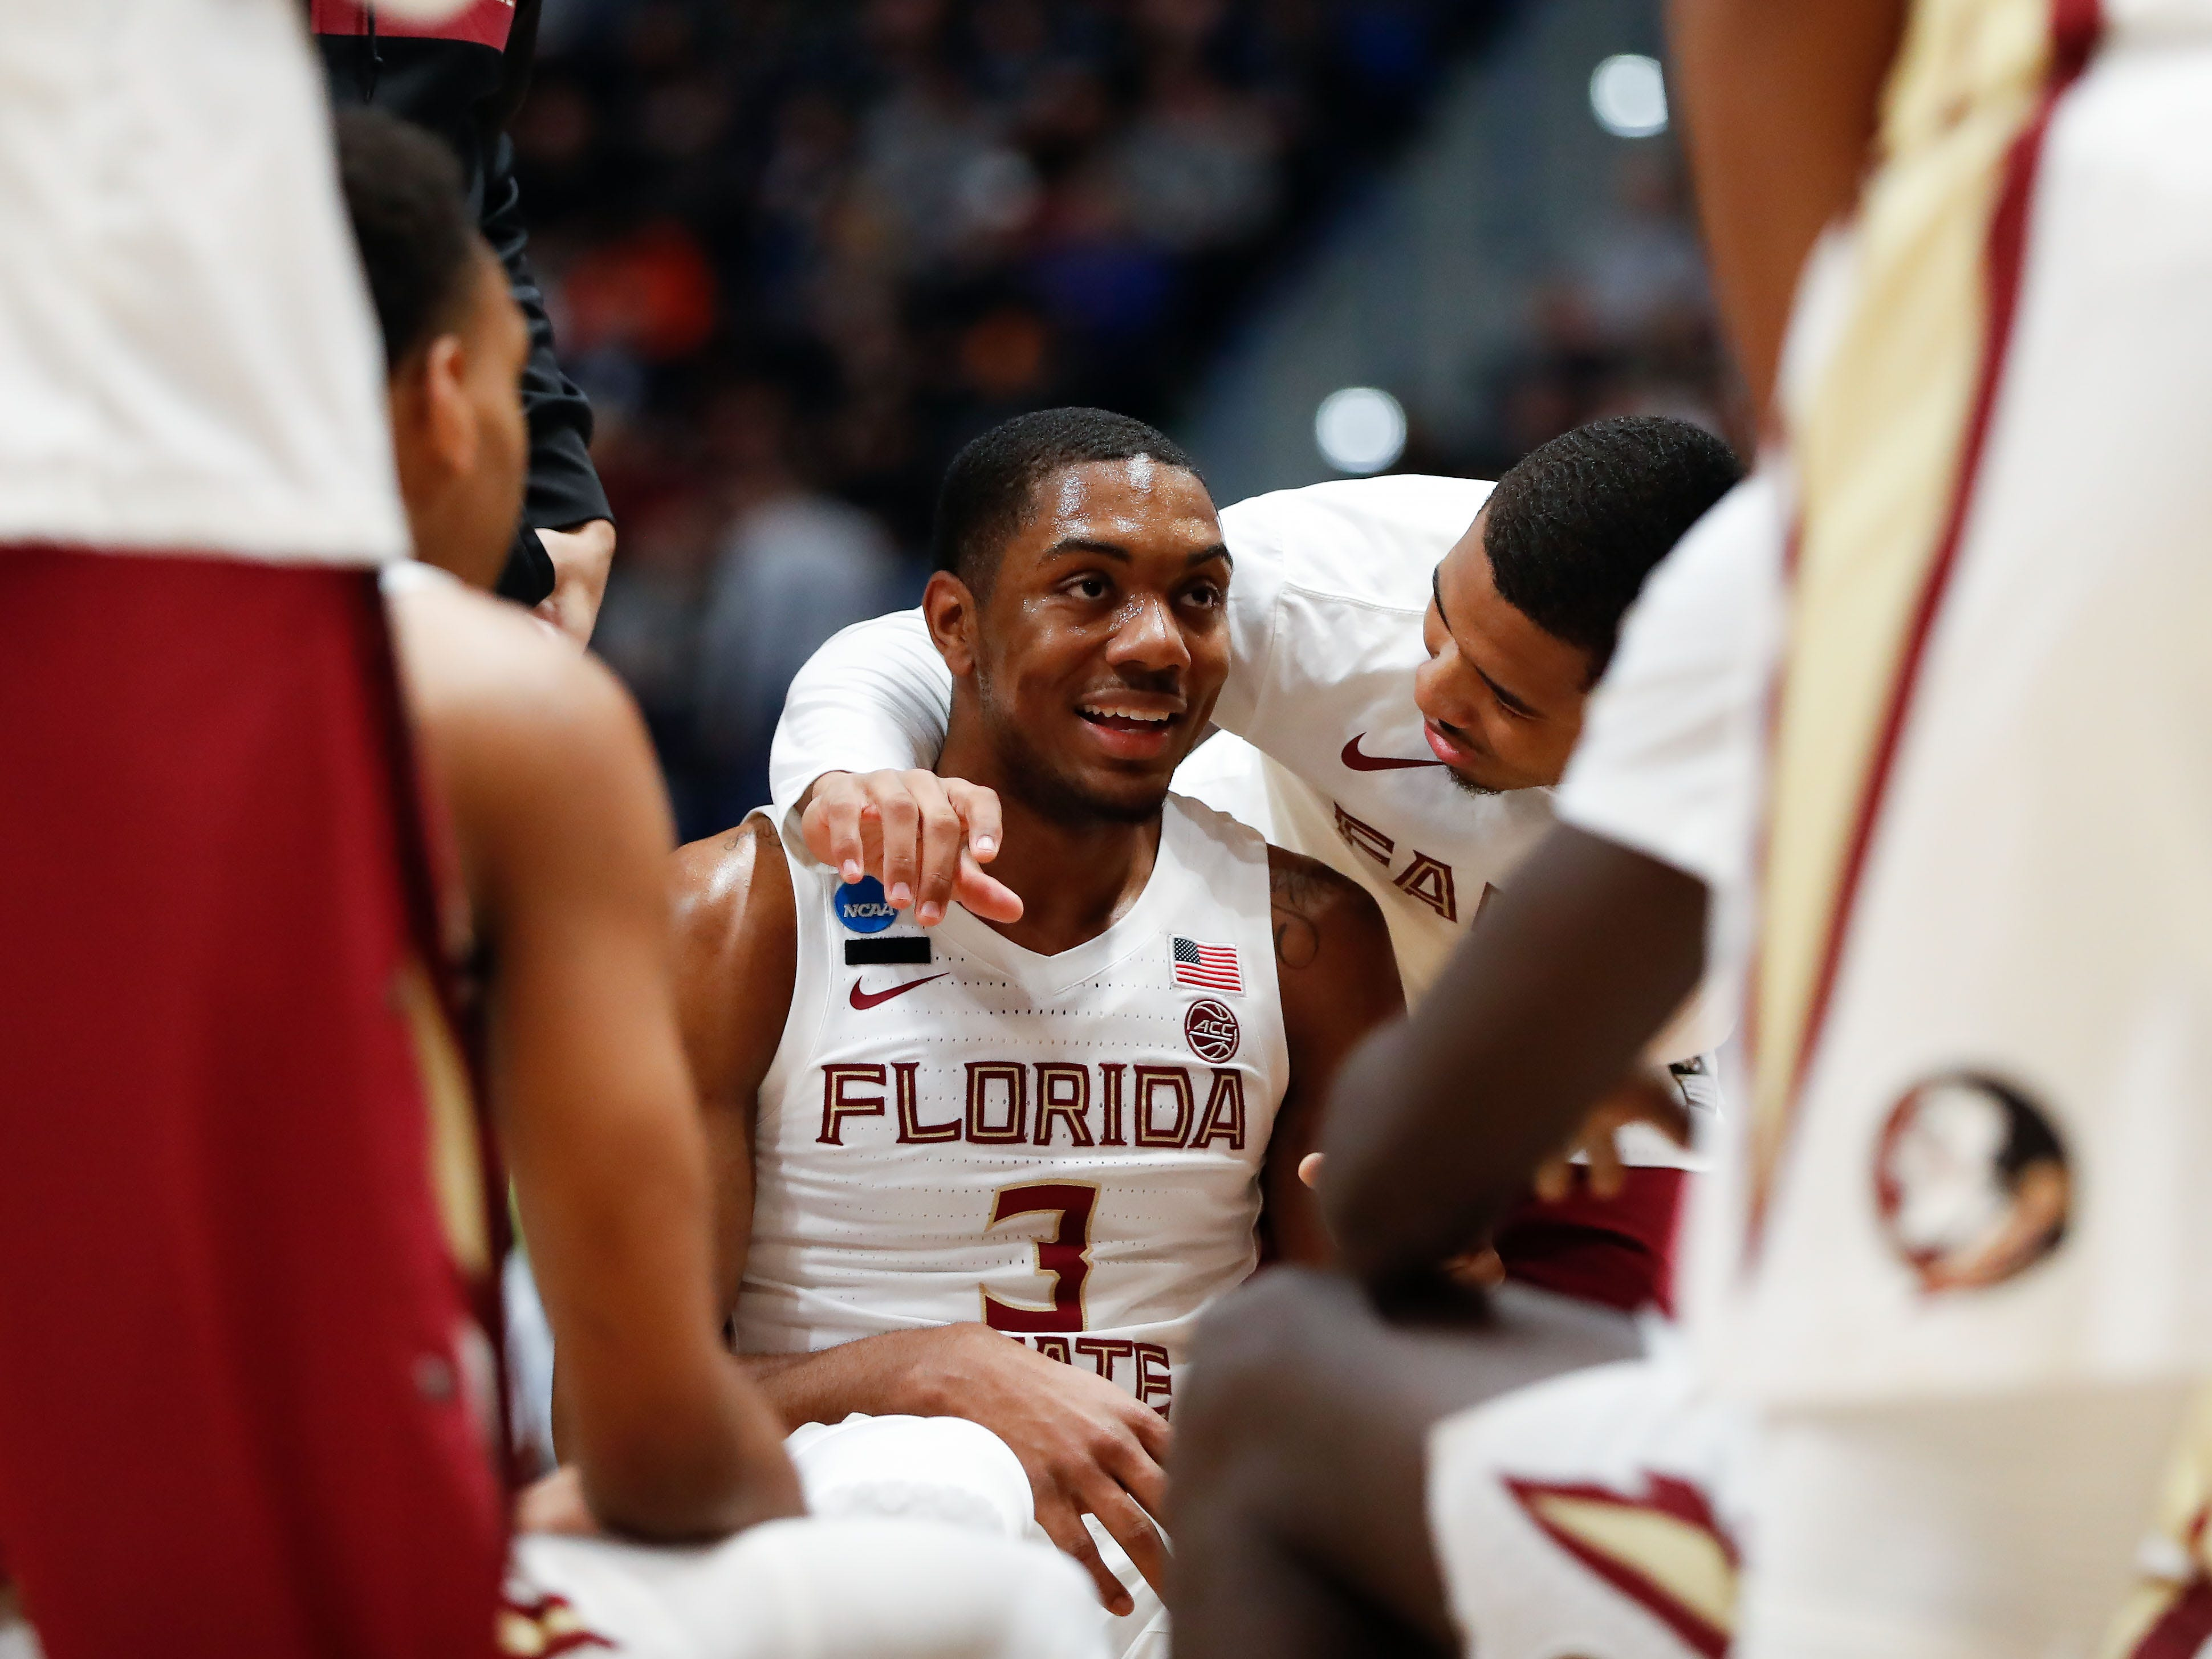 Mar 23, 2019; Hartford, CT, USA; Florida State Seminoles guard Trent Forrest (3) talks with teammates during a time out in the first half of a game against the Murray State Racers in the second round of the 2019 NCAA Tournament at XL Center. Mandatory Credit: David Butler II-USA TODAY Sports